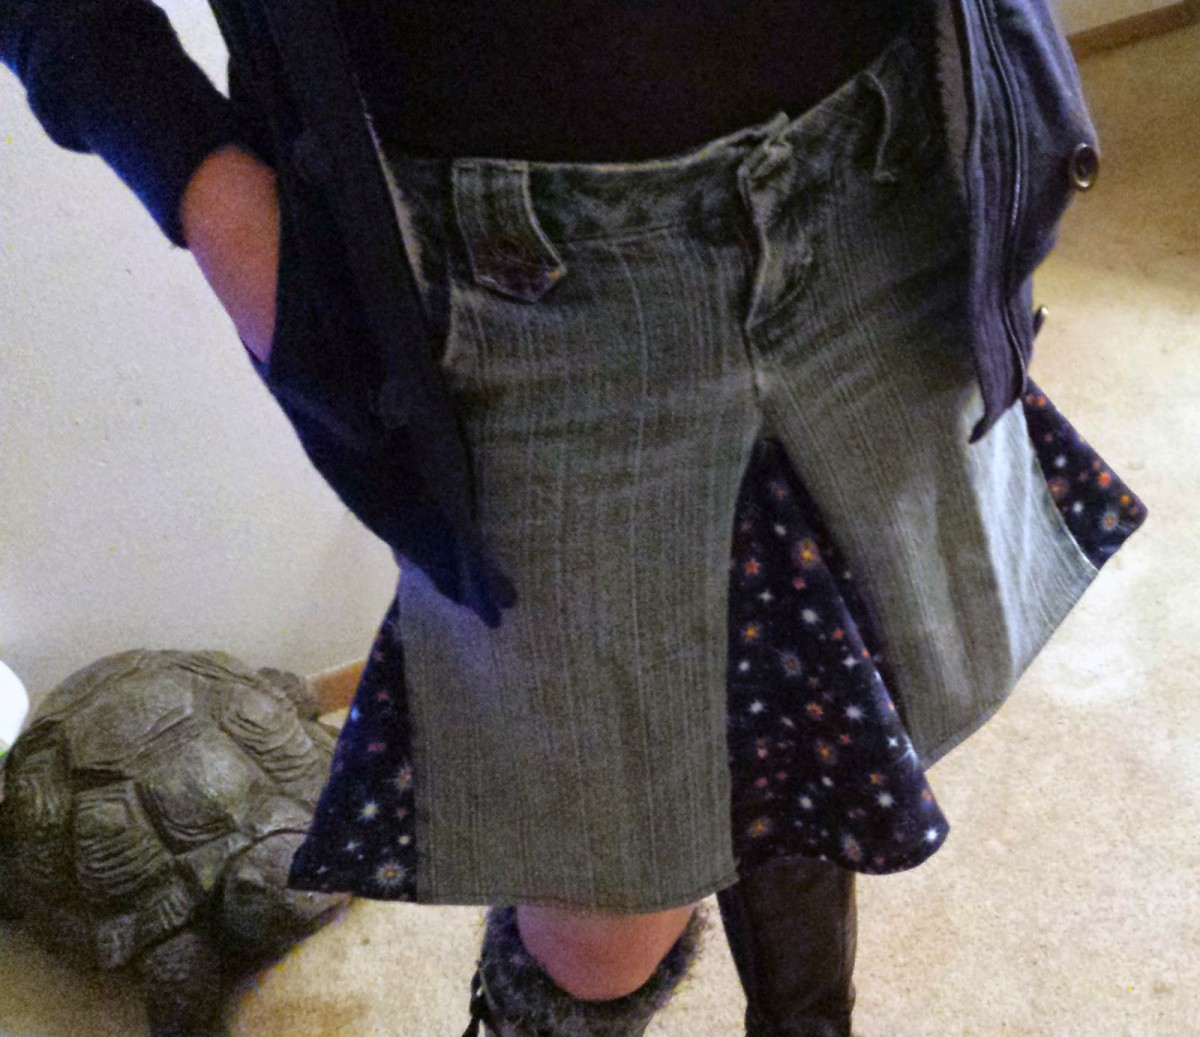 The fun, flippy skirt I made with my old jeans.